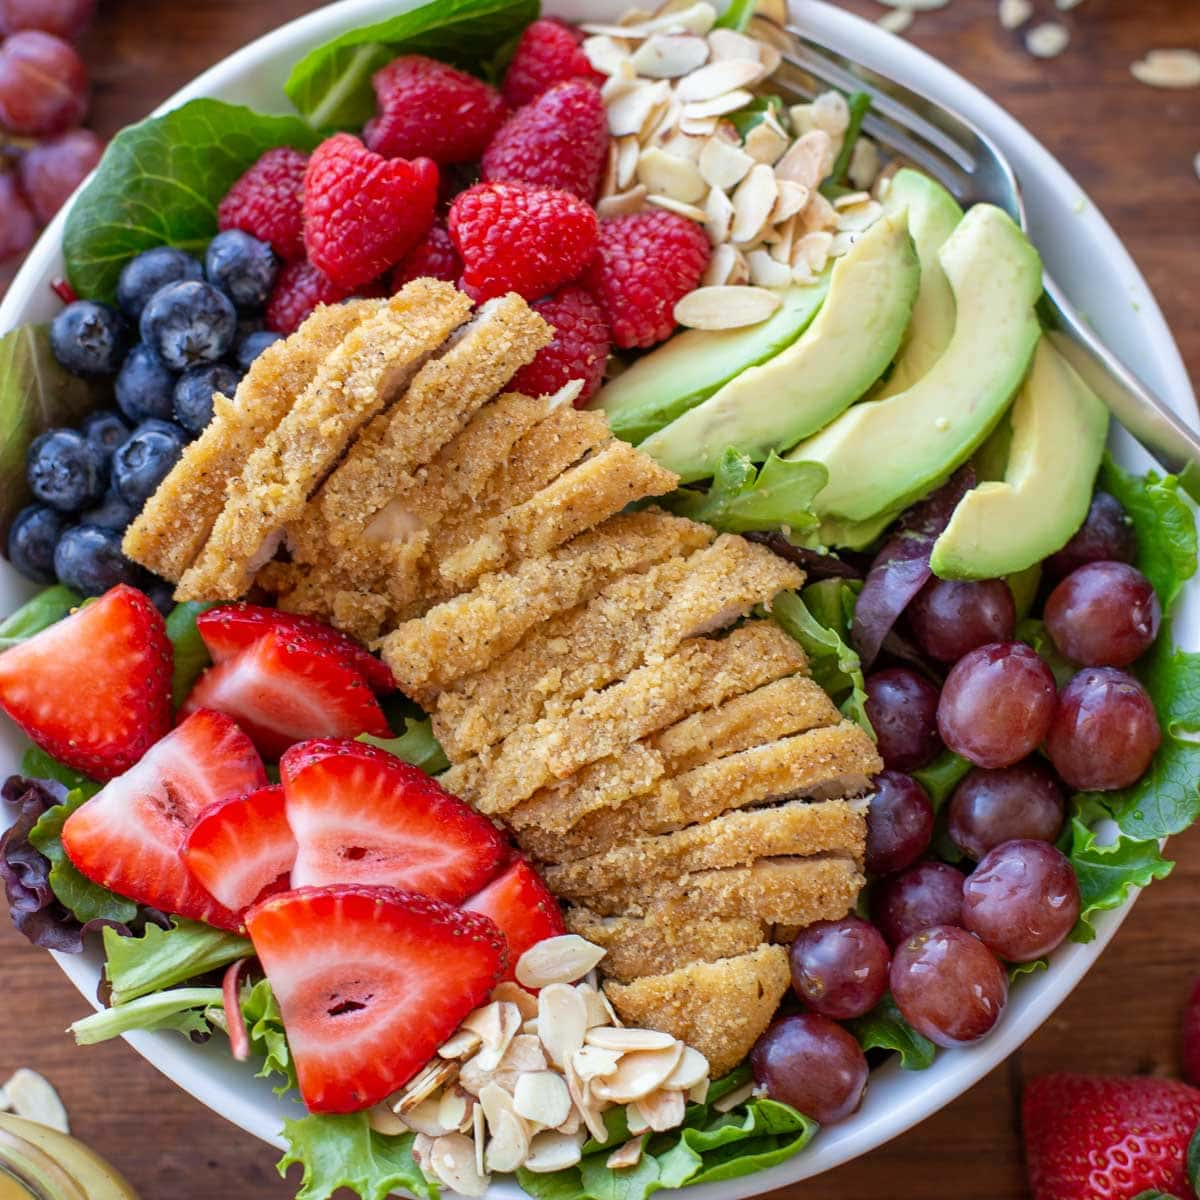 Chicken salad with berries, nuts, and avocado